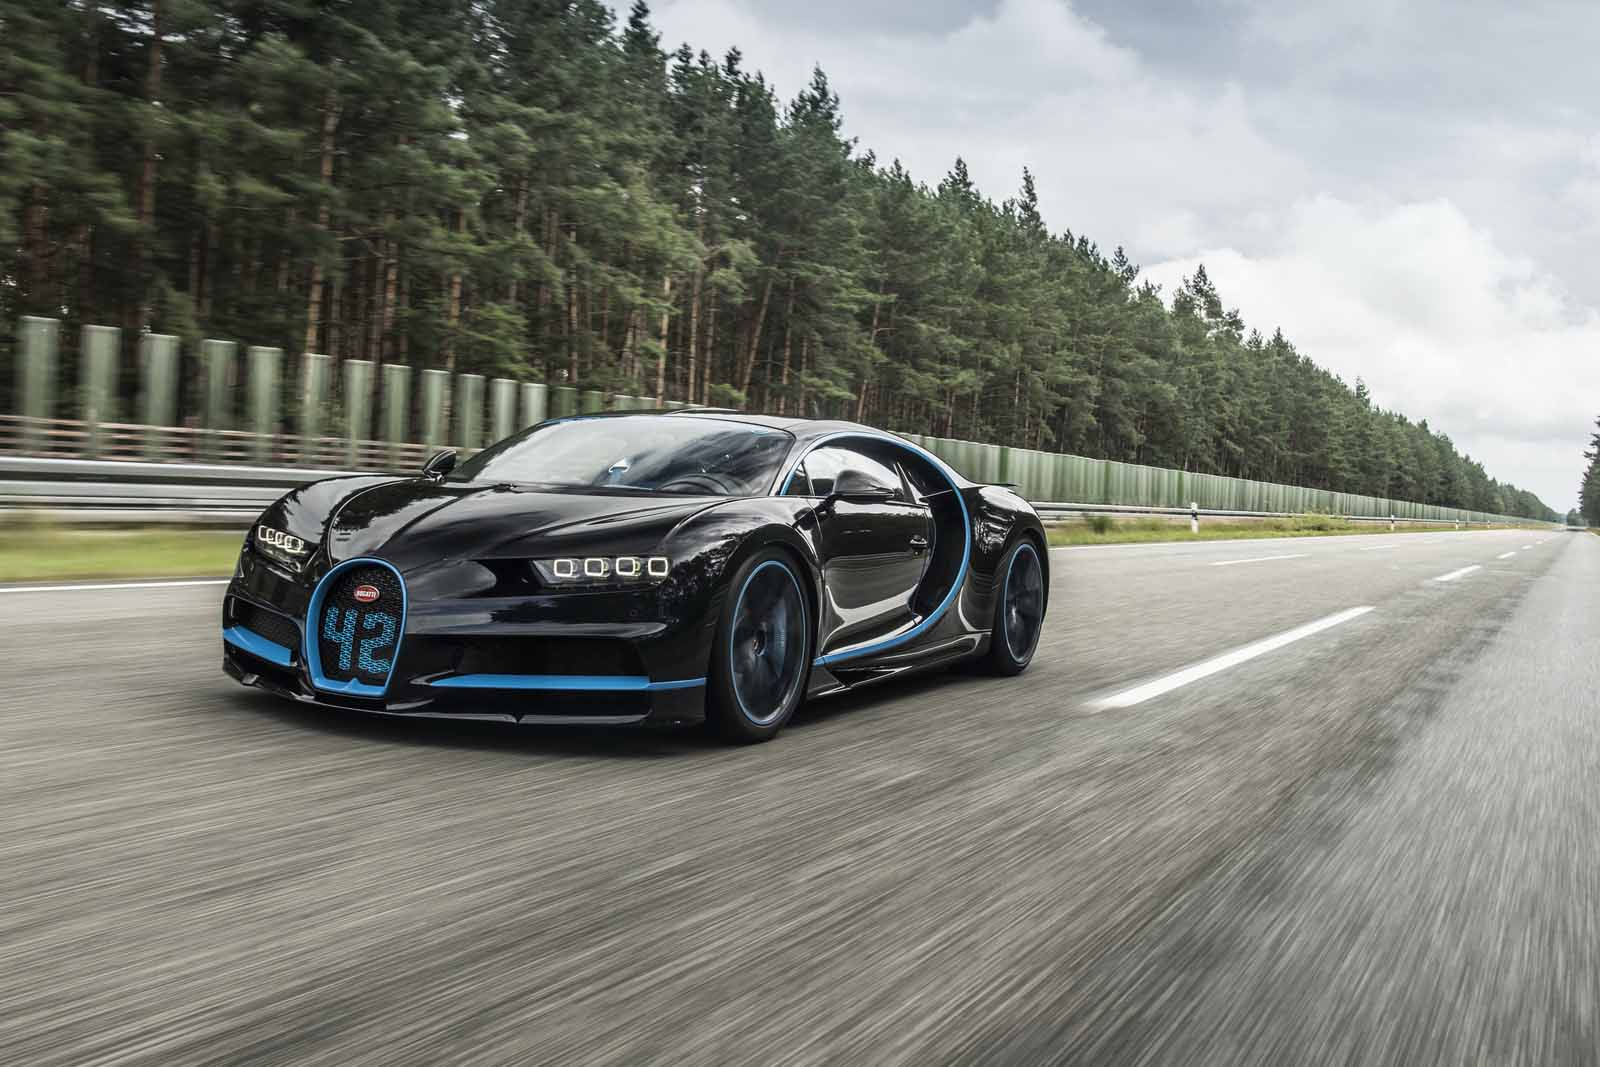 Bugatti Chiron Goes From 0-249 miles per hour  and Back in Record Time